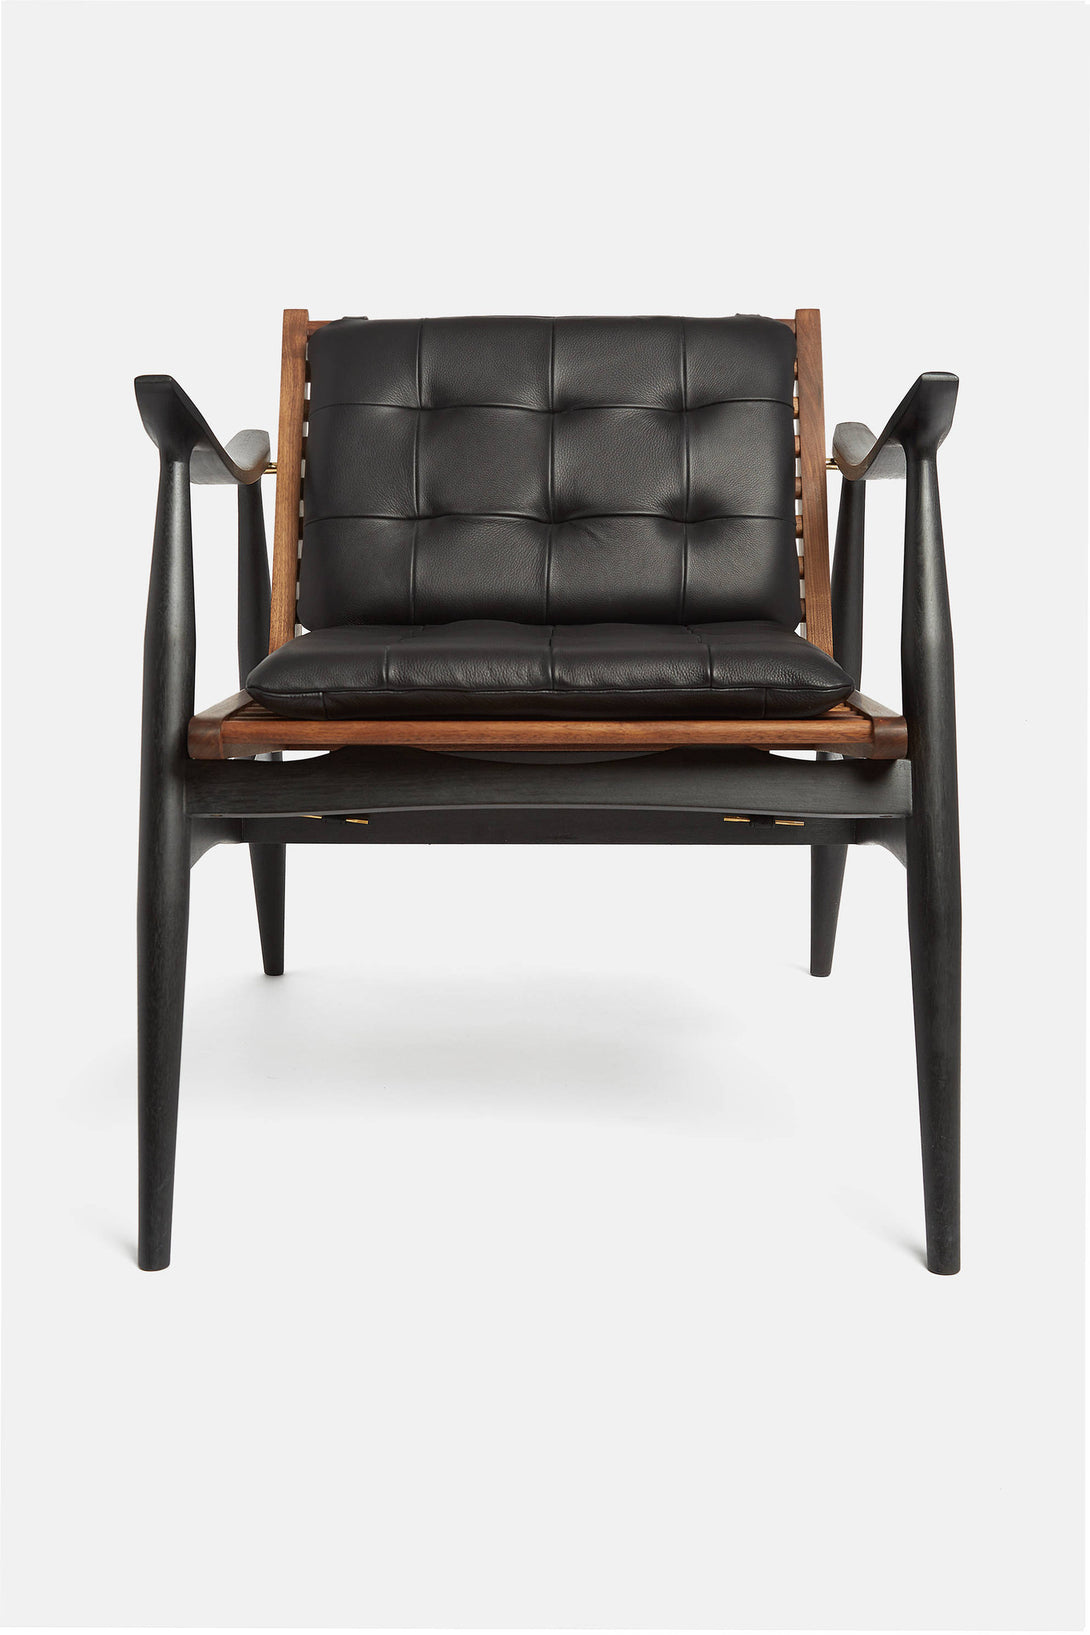 ... Matte Black And Walnut Atra Chair With Black Leather Cushions ...